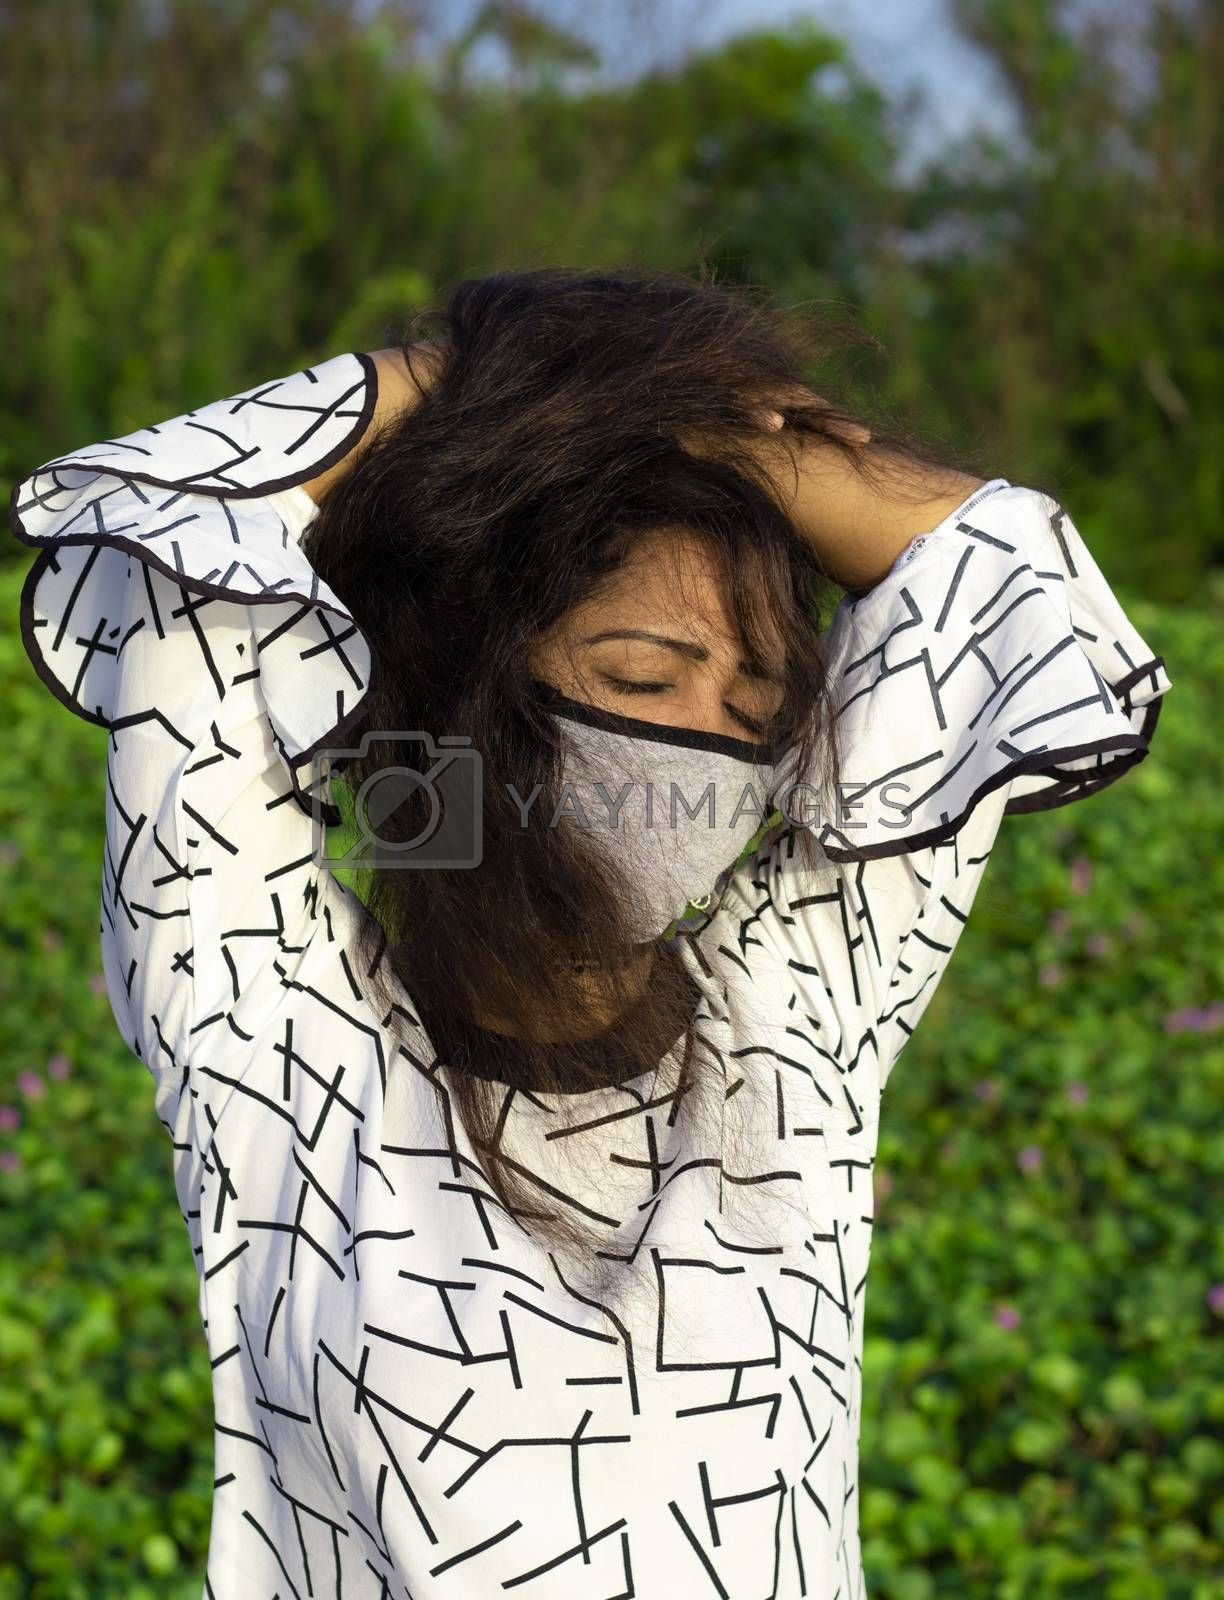 Portrait of a stylish young girl in a medical brown mask. Protection against contagious disease, coronavirus, covid-19.